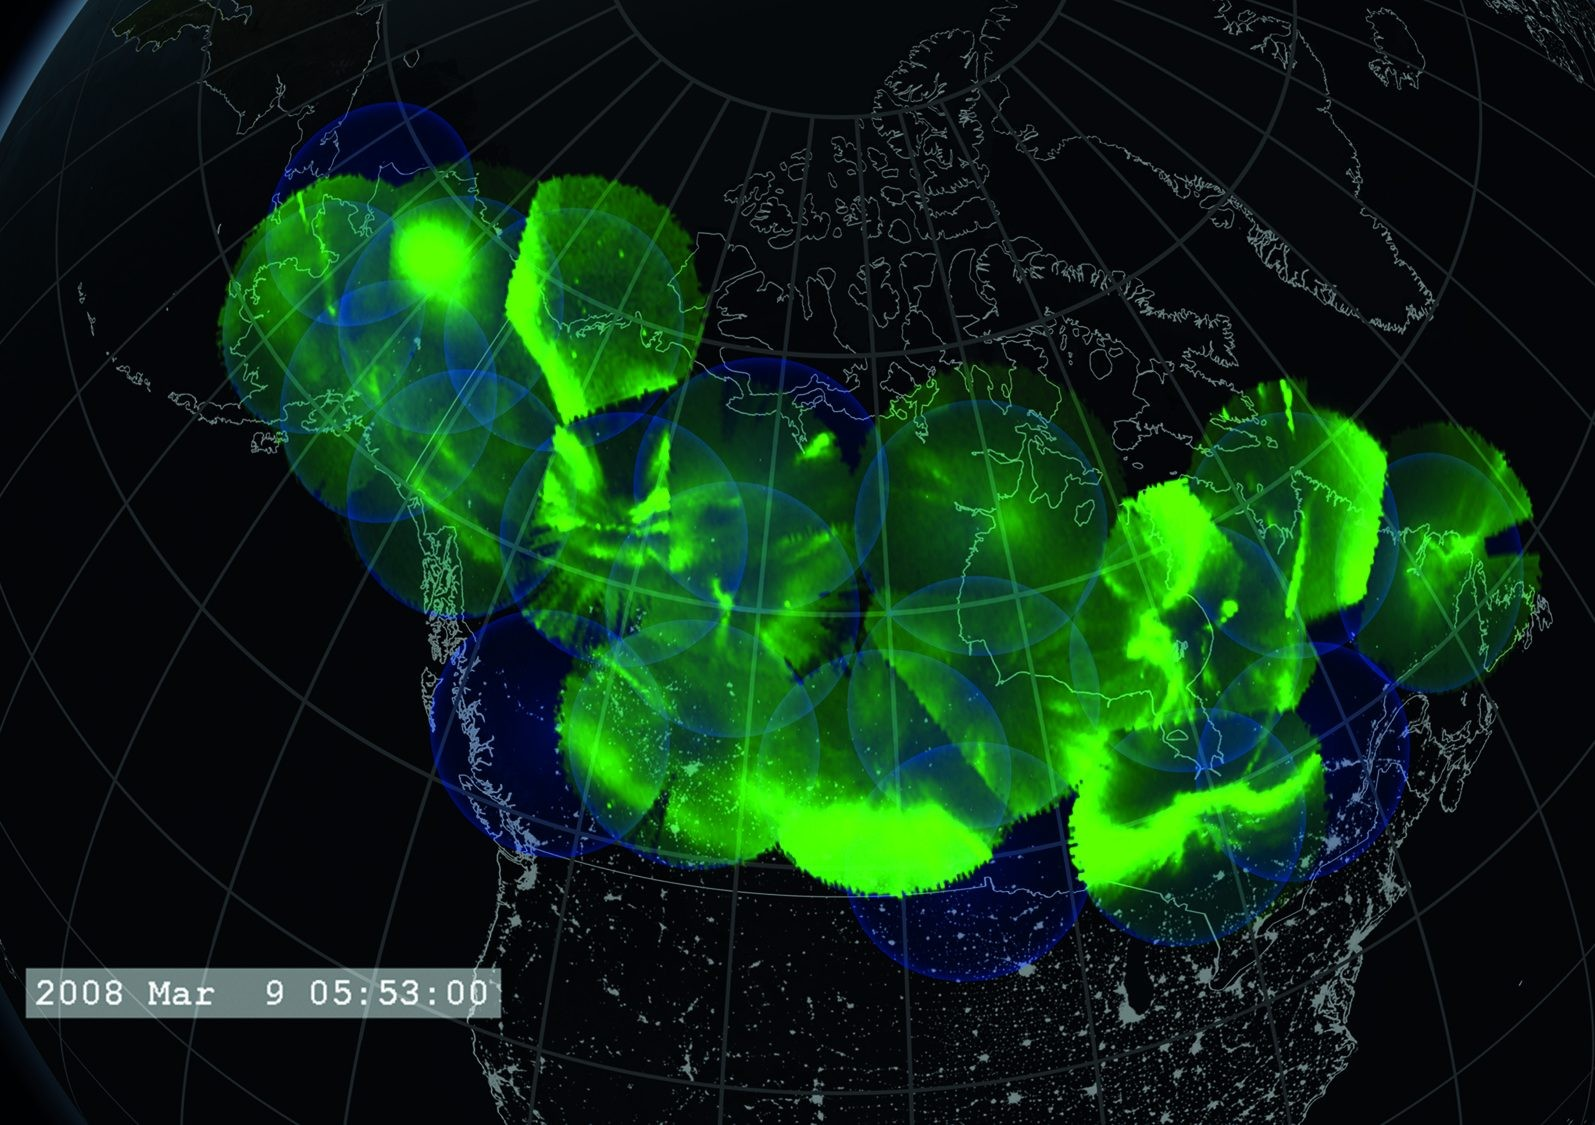 All-sky camera images can be combined to make an aurora map that covers all of Canada. Credit: NASA Goddard Space Flight Center Scientific Visualization Studio